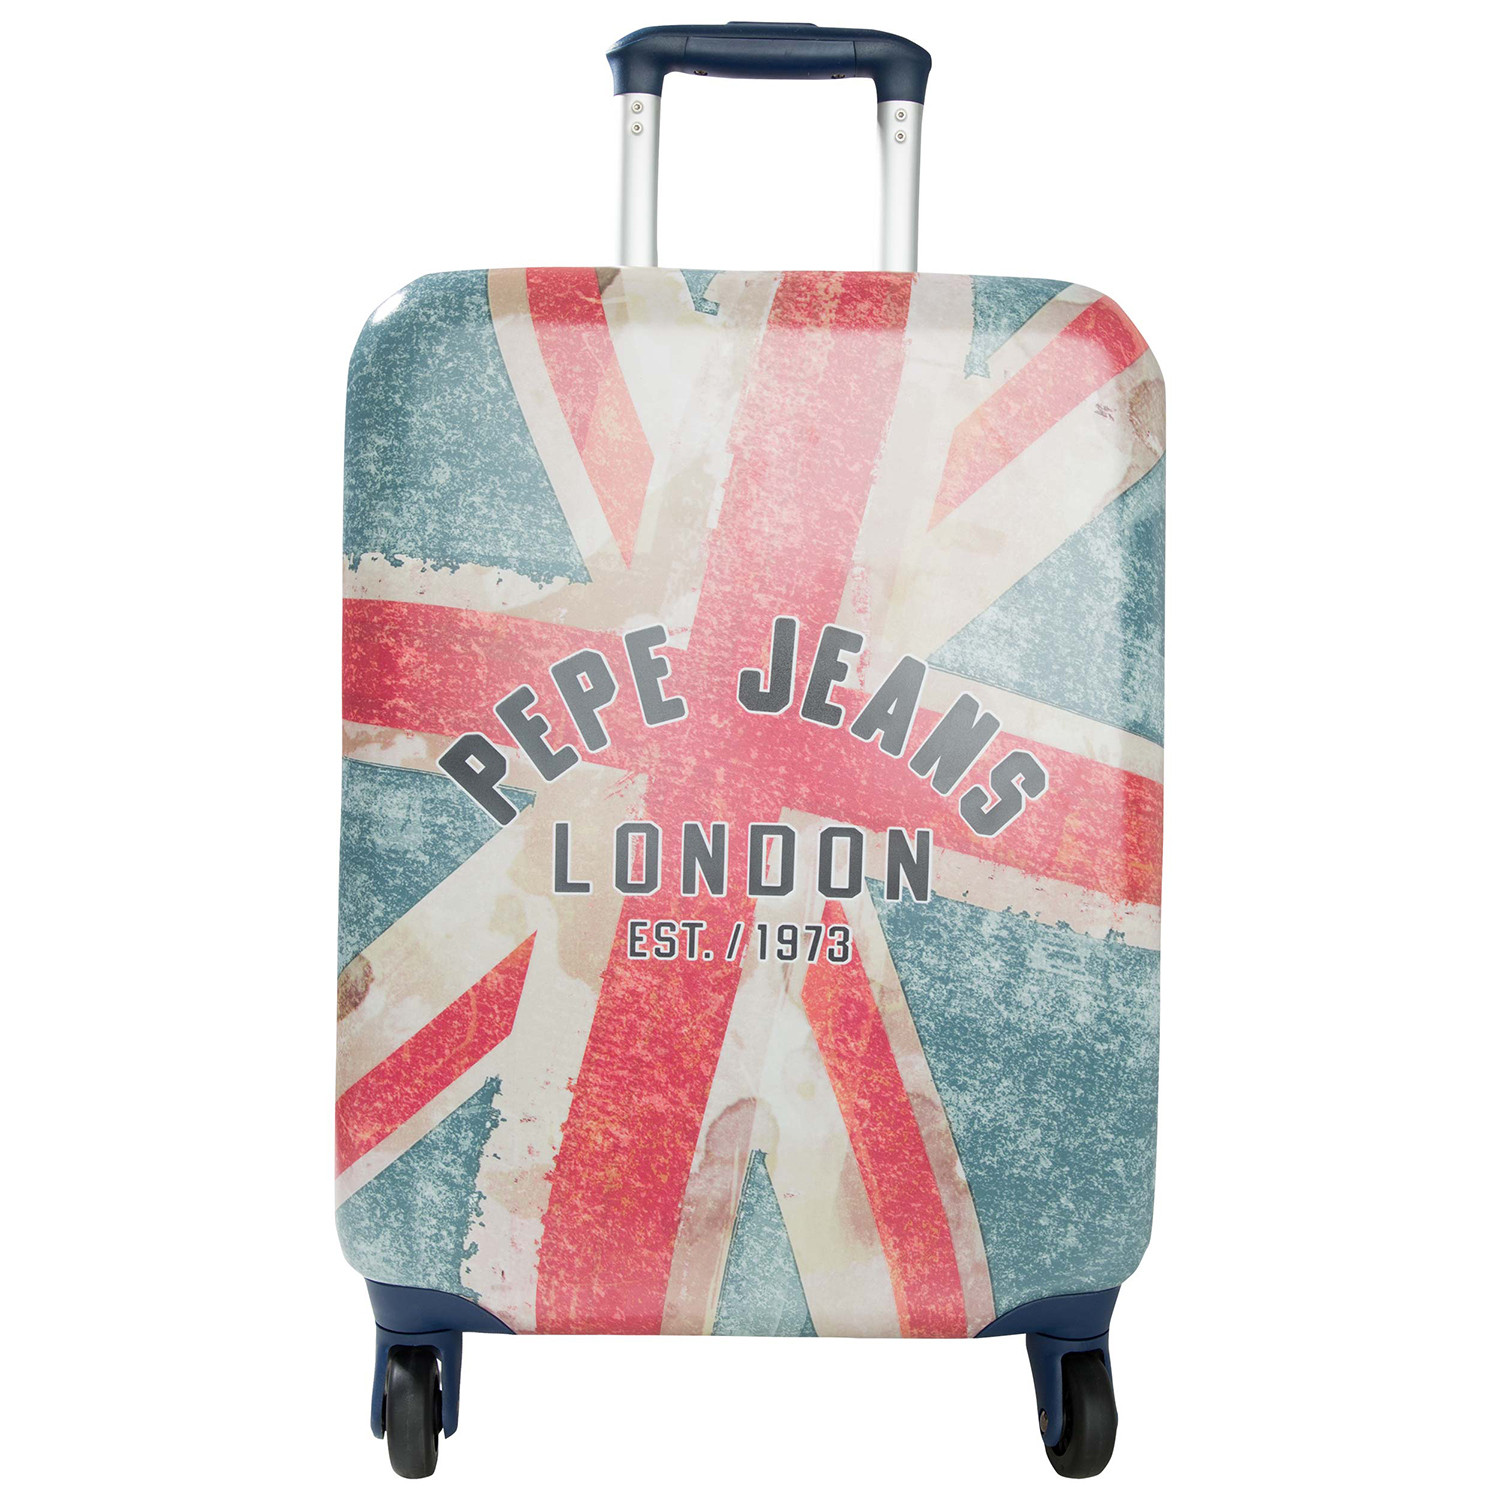 bonny valise gar on pepe jeans multicolore pas cher valises gar on pepe jeans discount. Black Bedroom Furniture Sets. Home Design Ideas